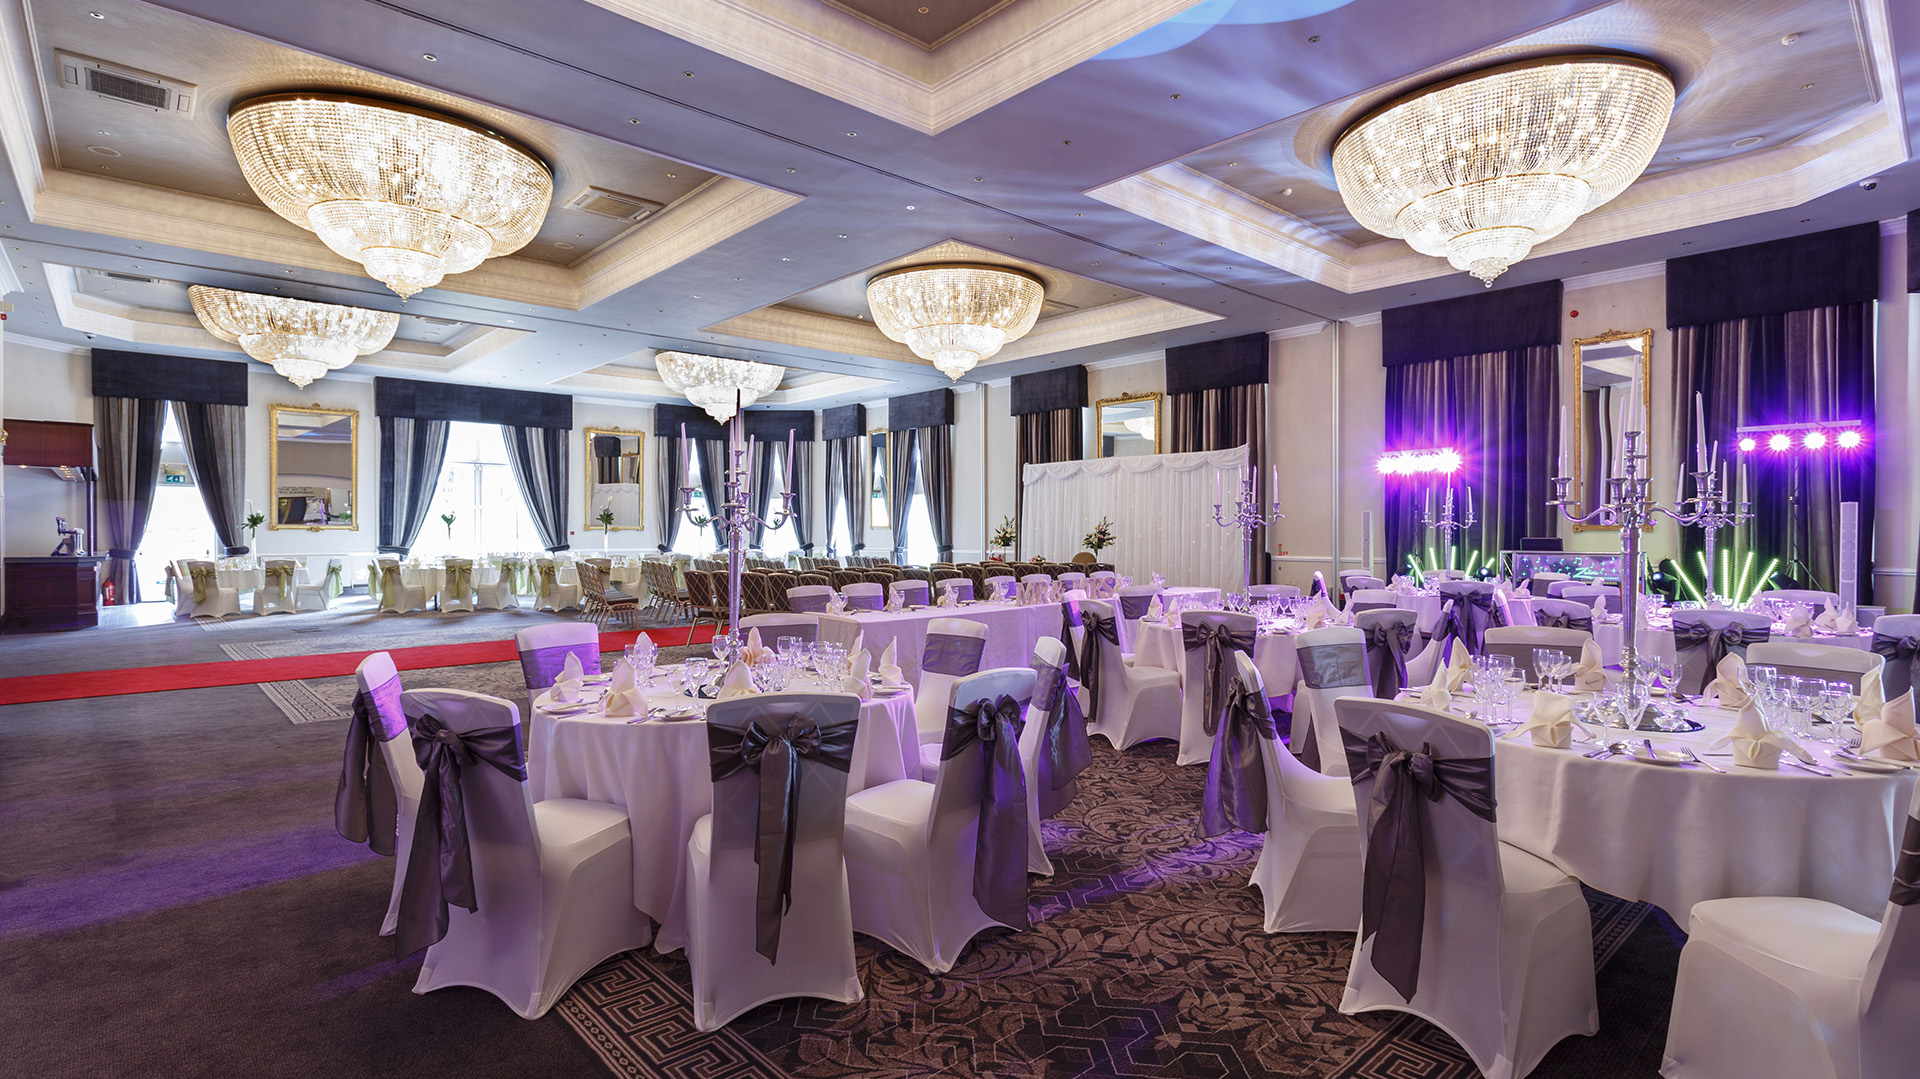 Wedding Open Days In County Durham Free Entry Hardwick Hall Hotel